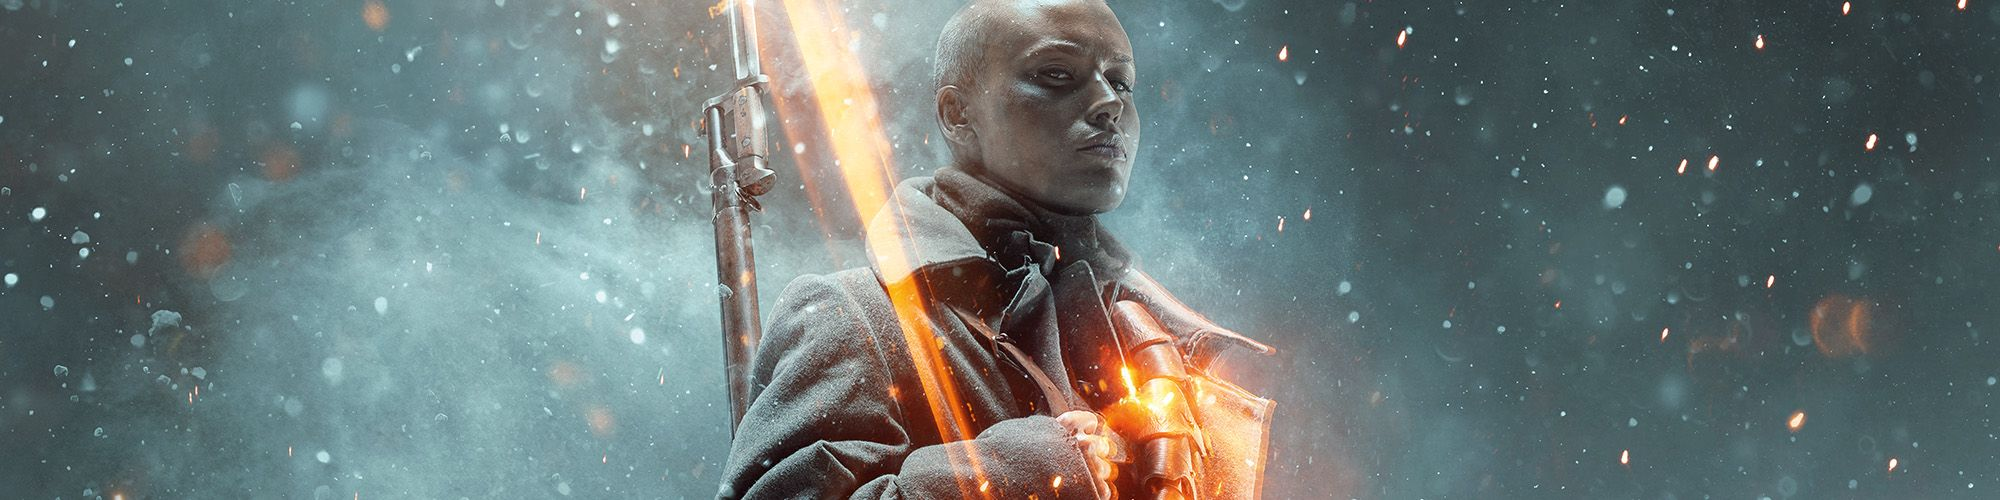 Shooter Games for PC and Mac | Origin